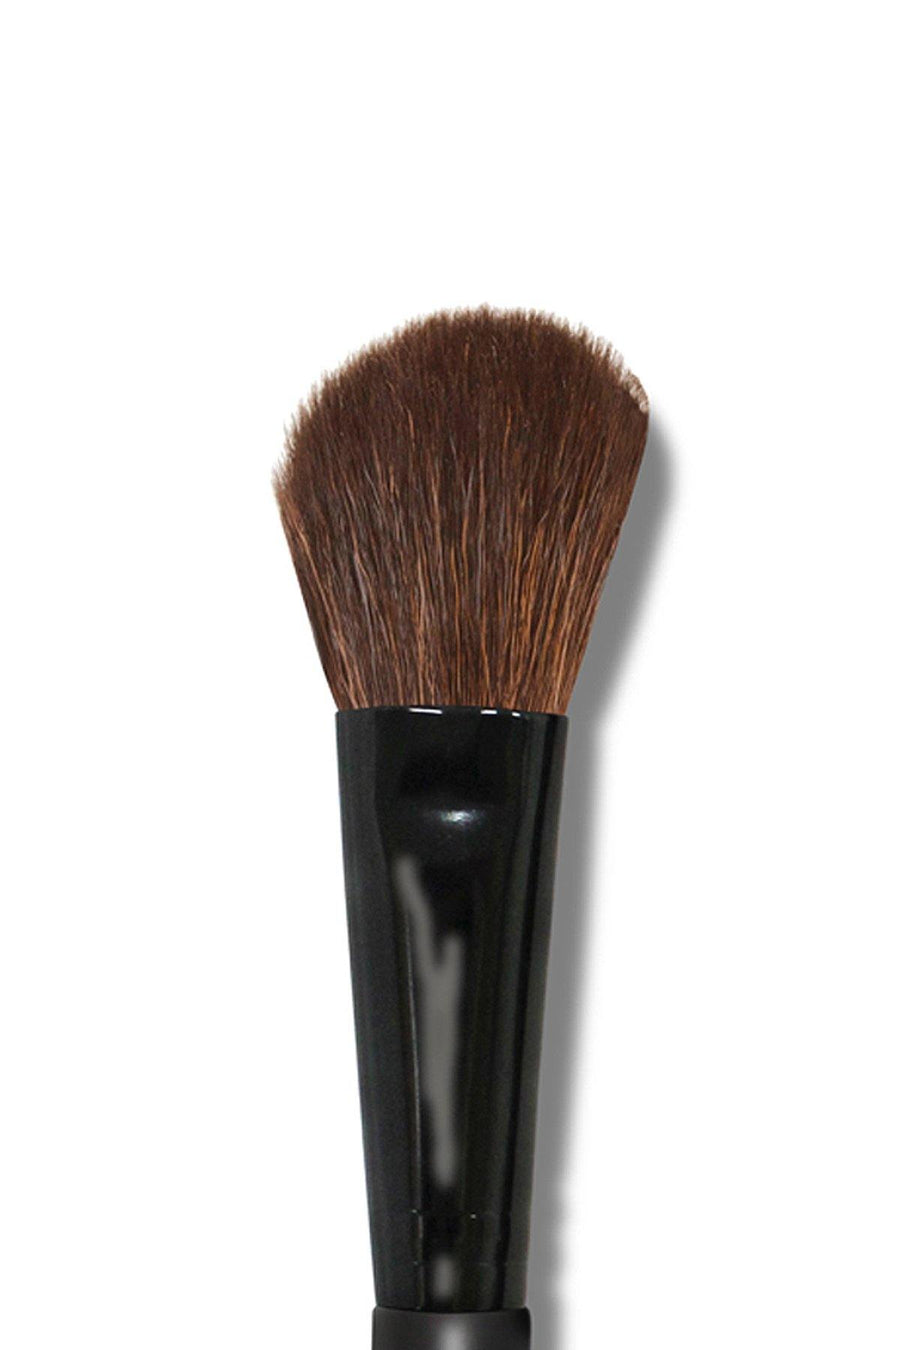 Blush Brush - Black - Blend Mineral Cosmetics